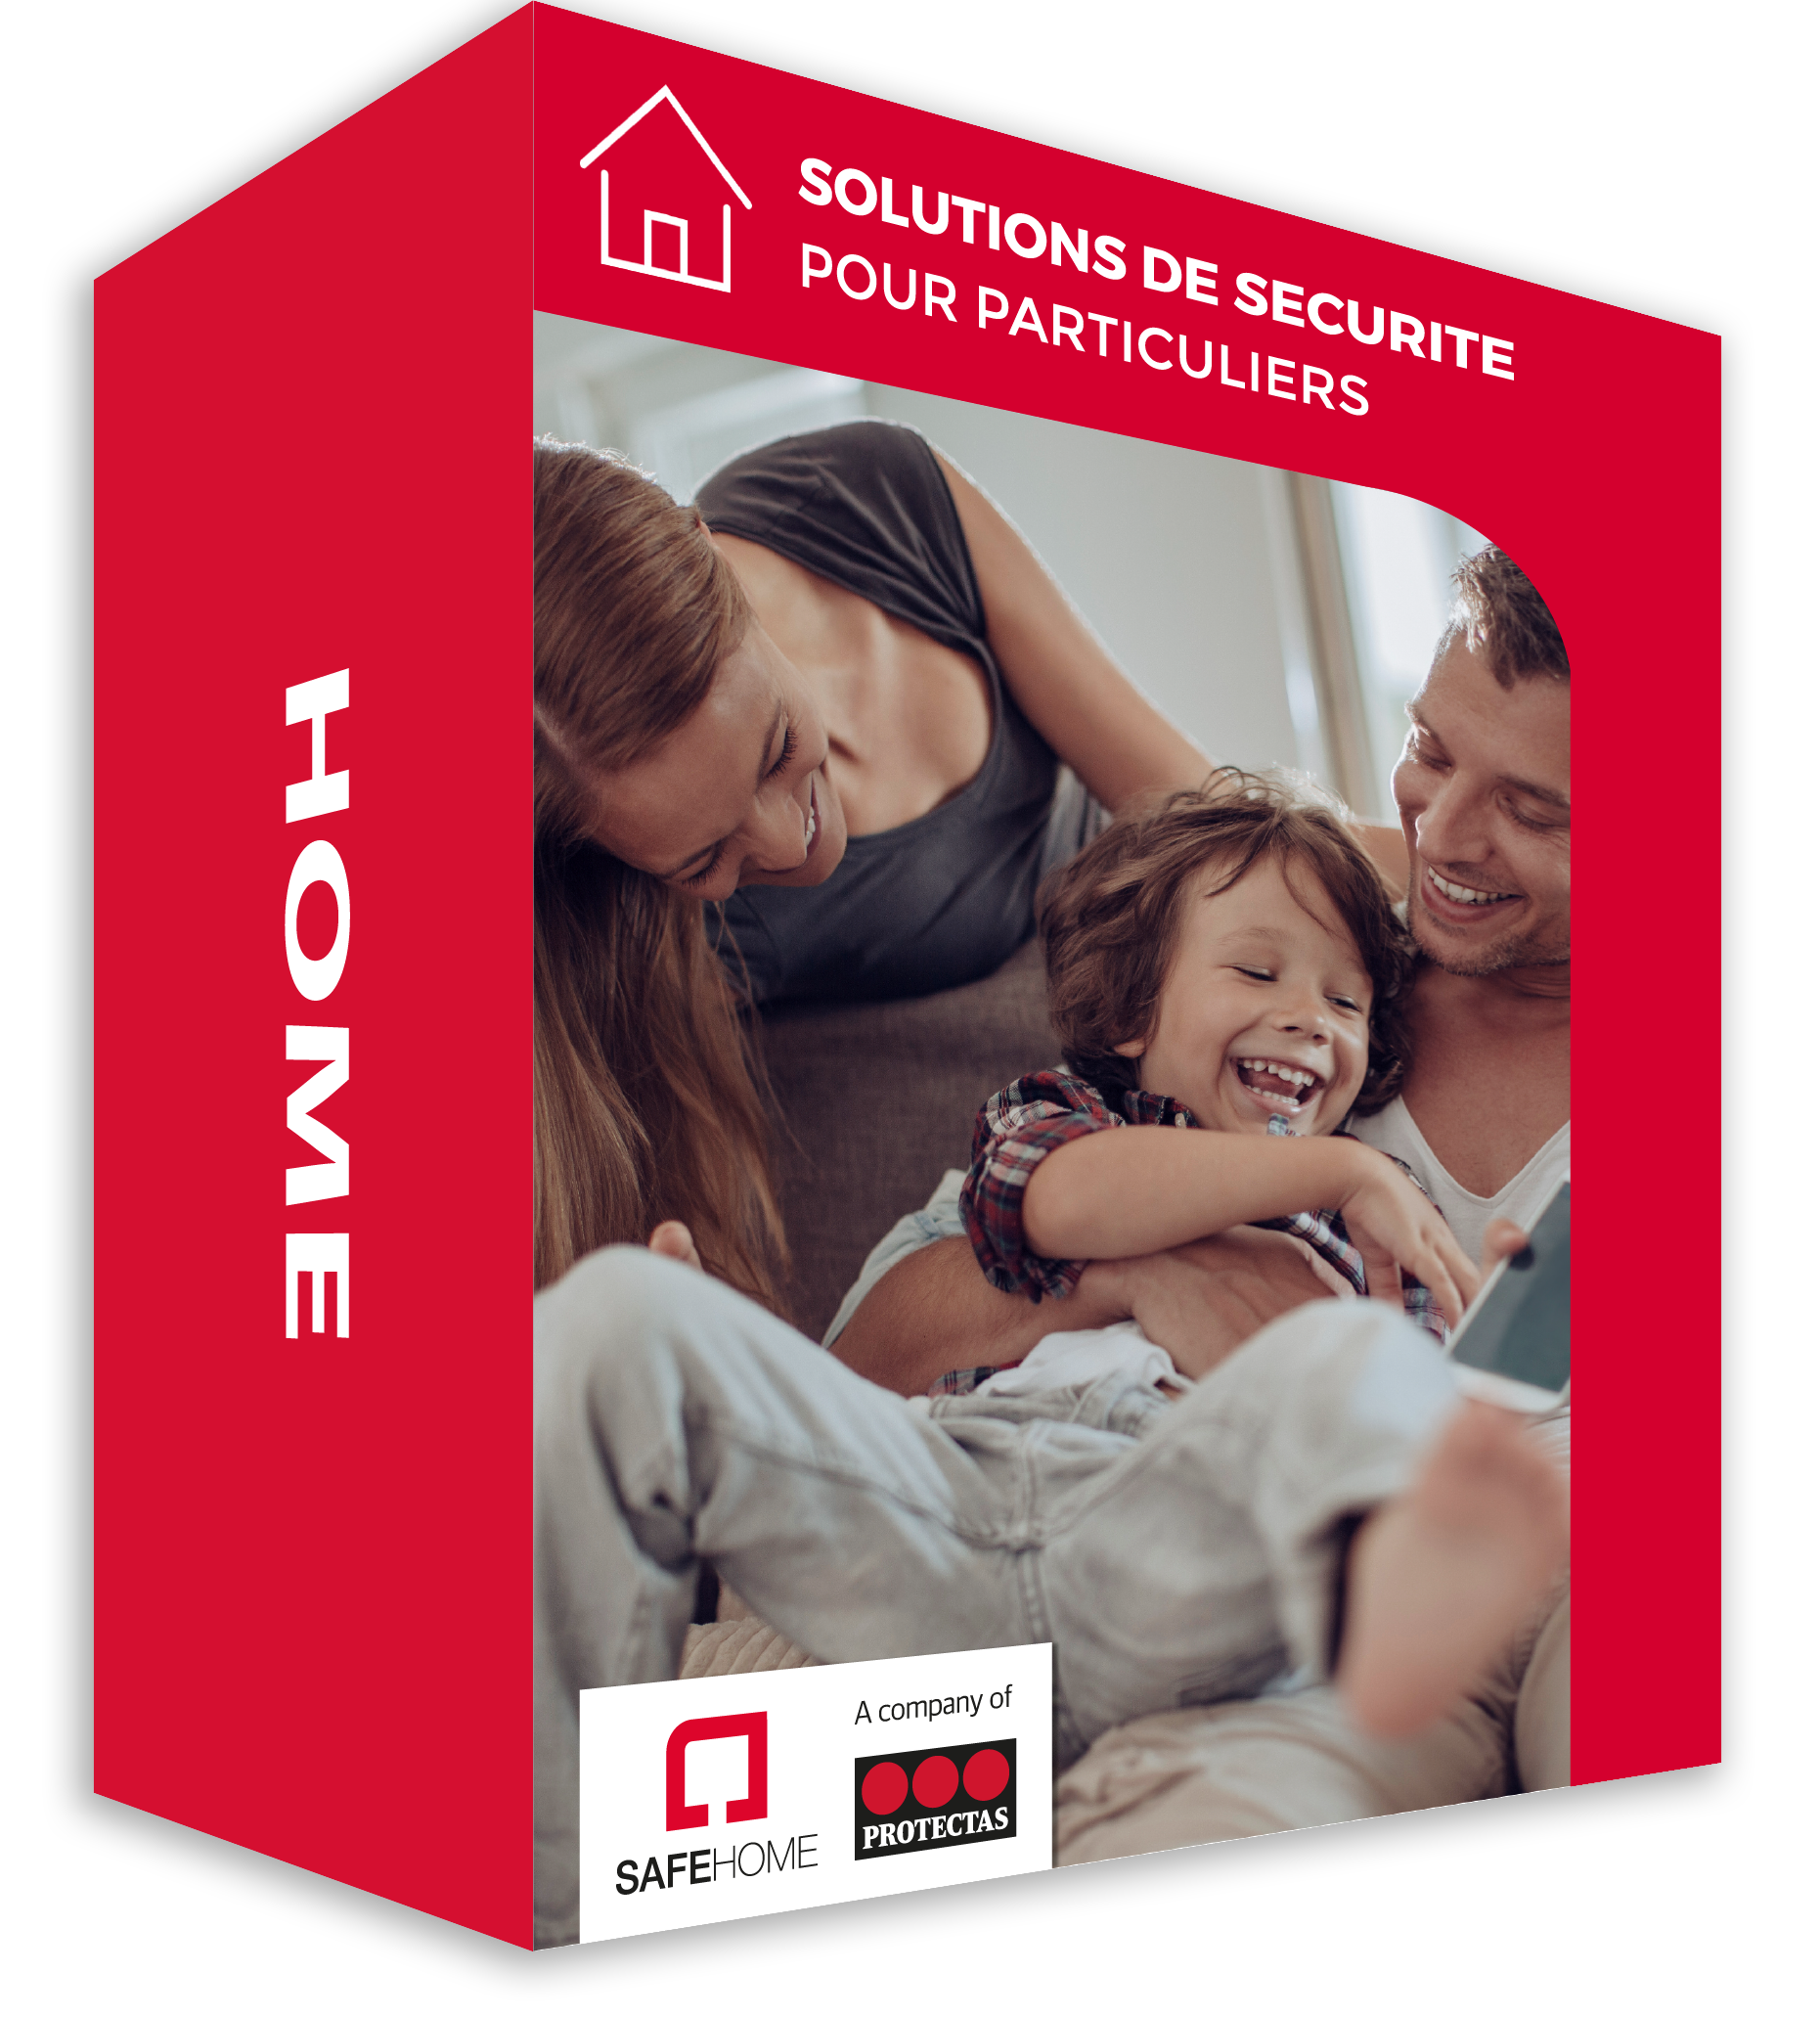 pack pour particuliers